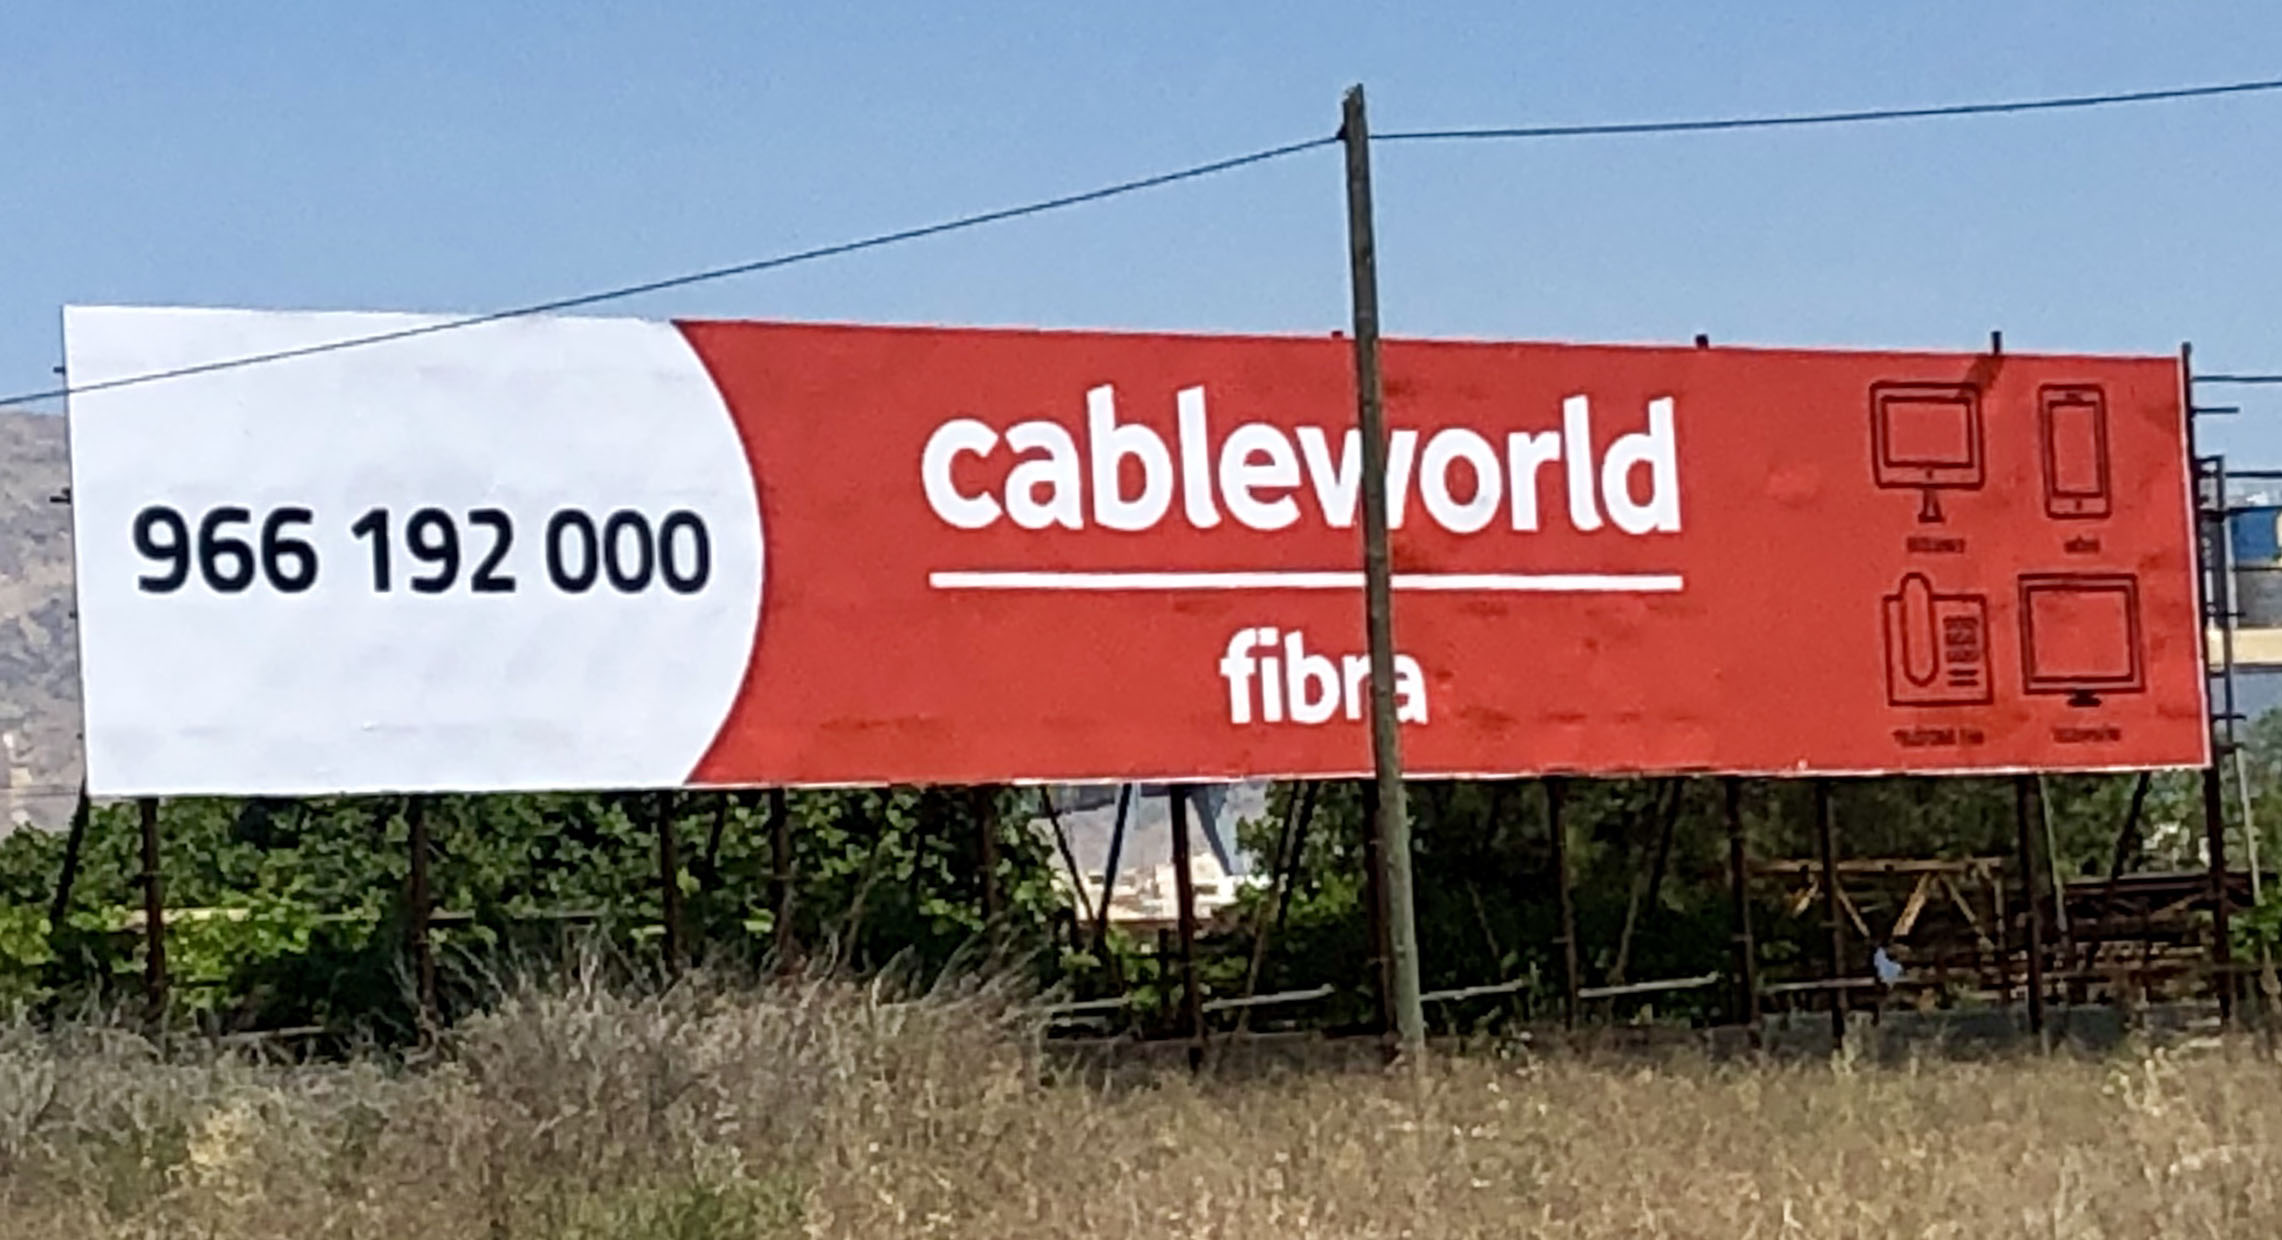 1_CABLE_WORLD.jpg